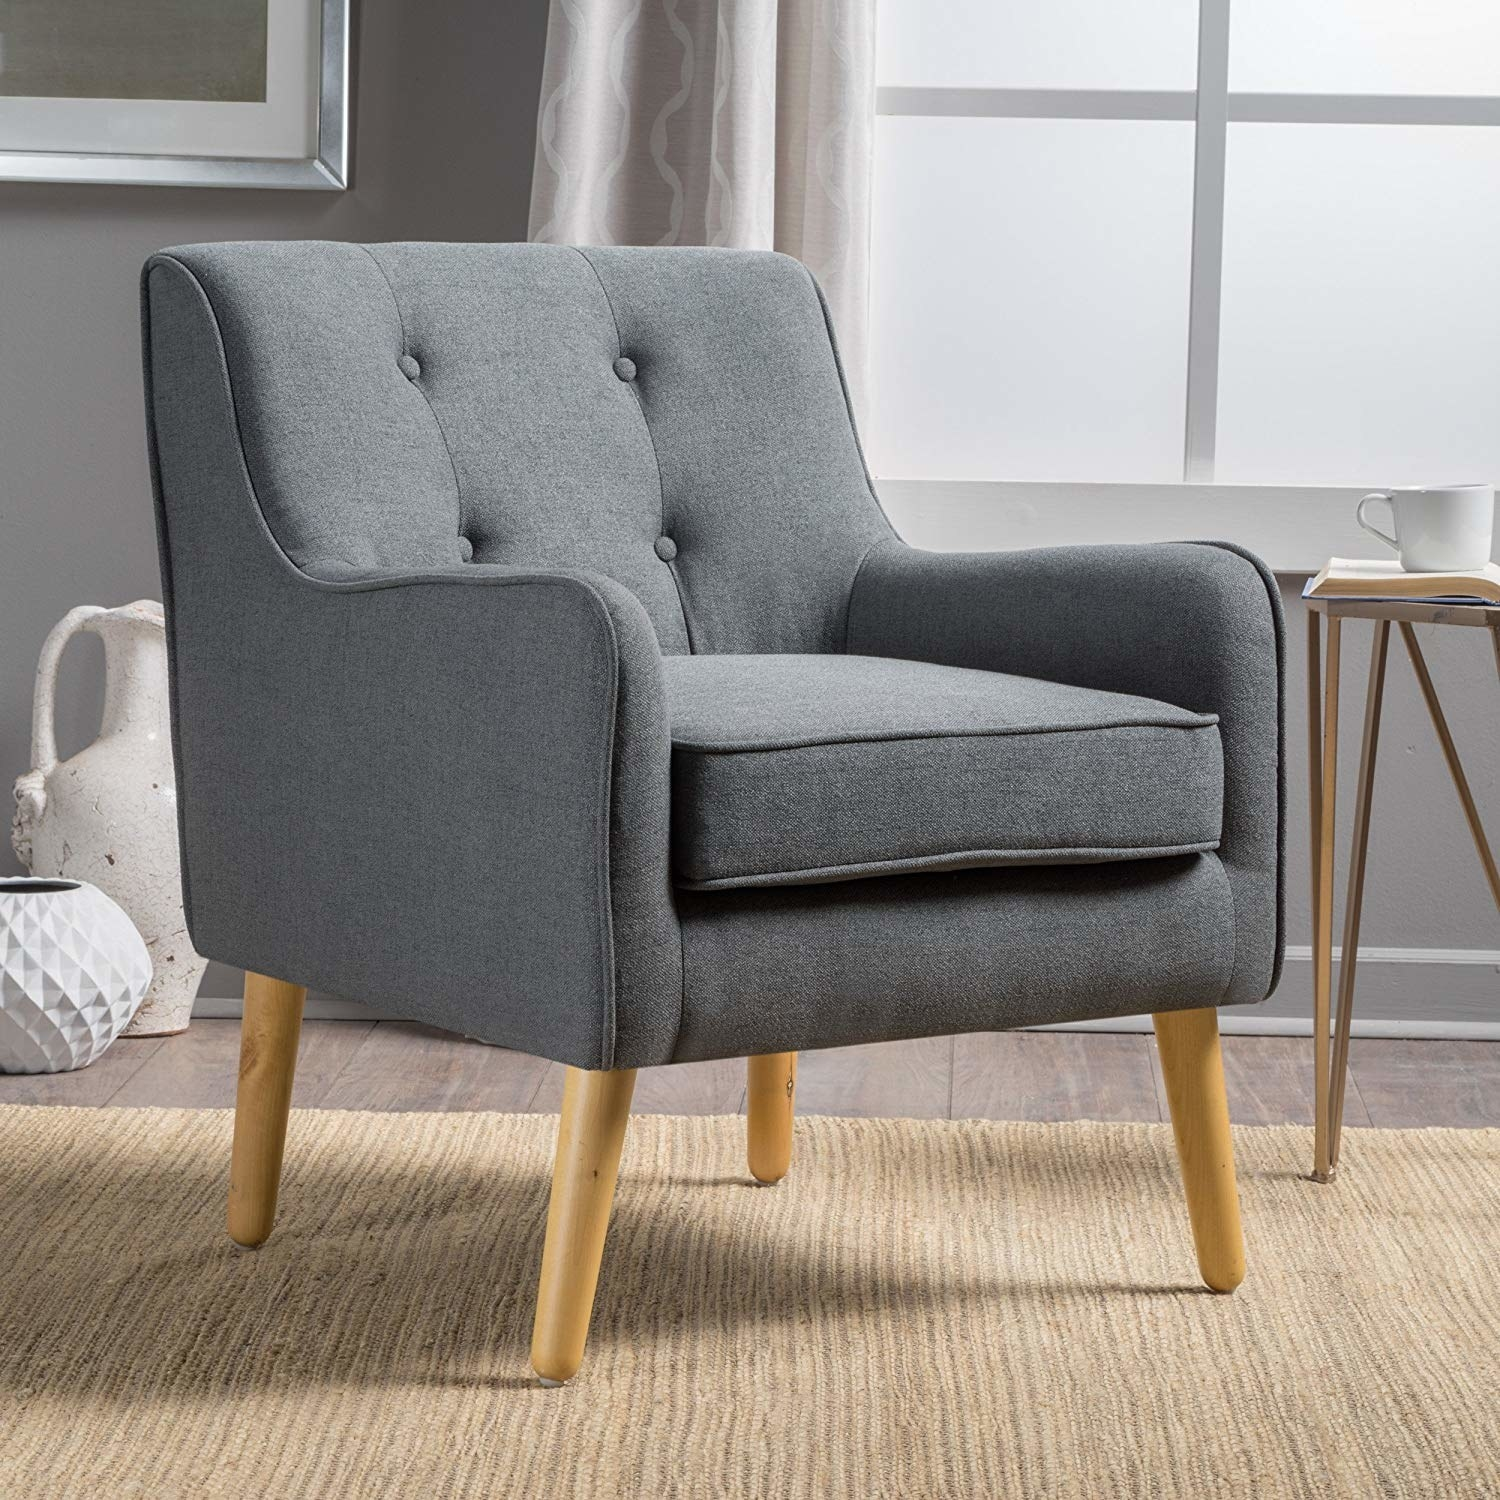 a gray arm chair with a tufted back and wooden legs